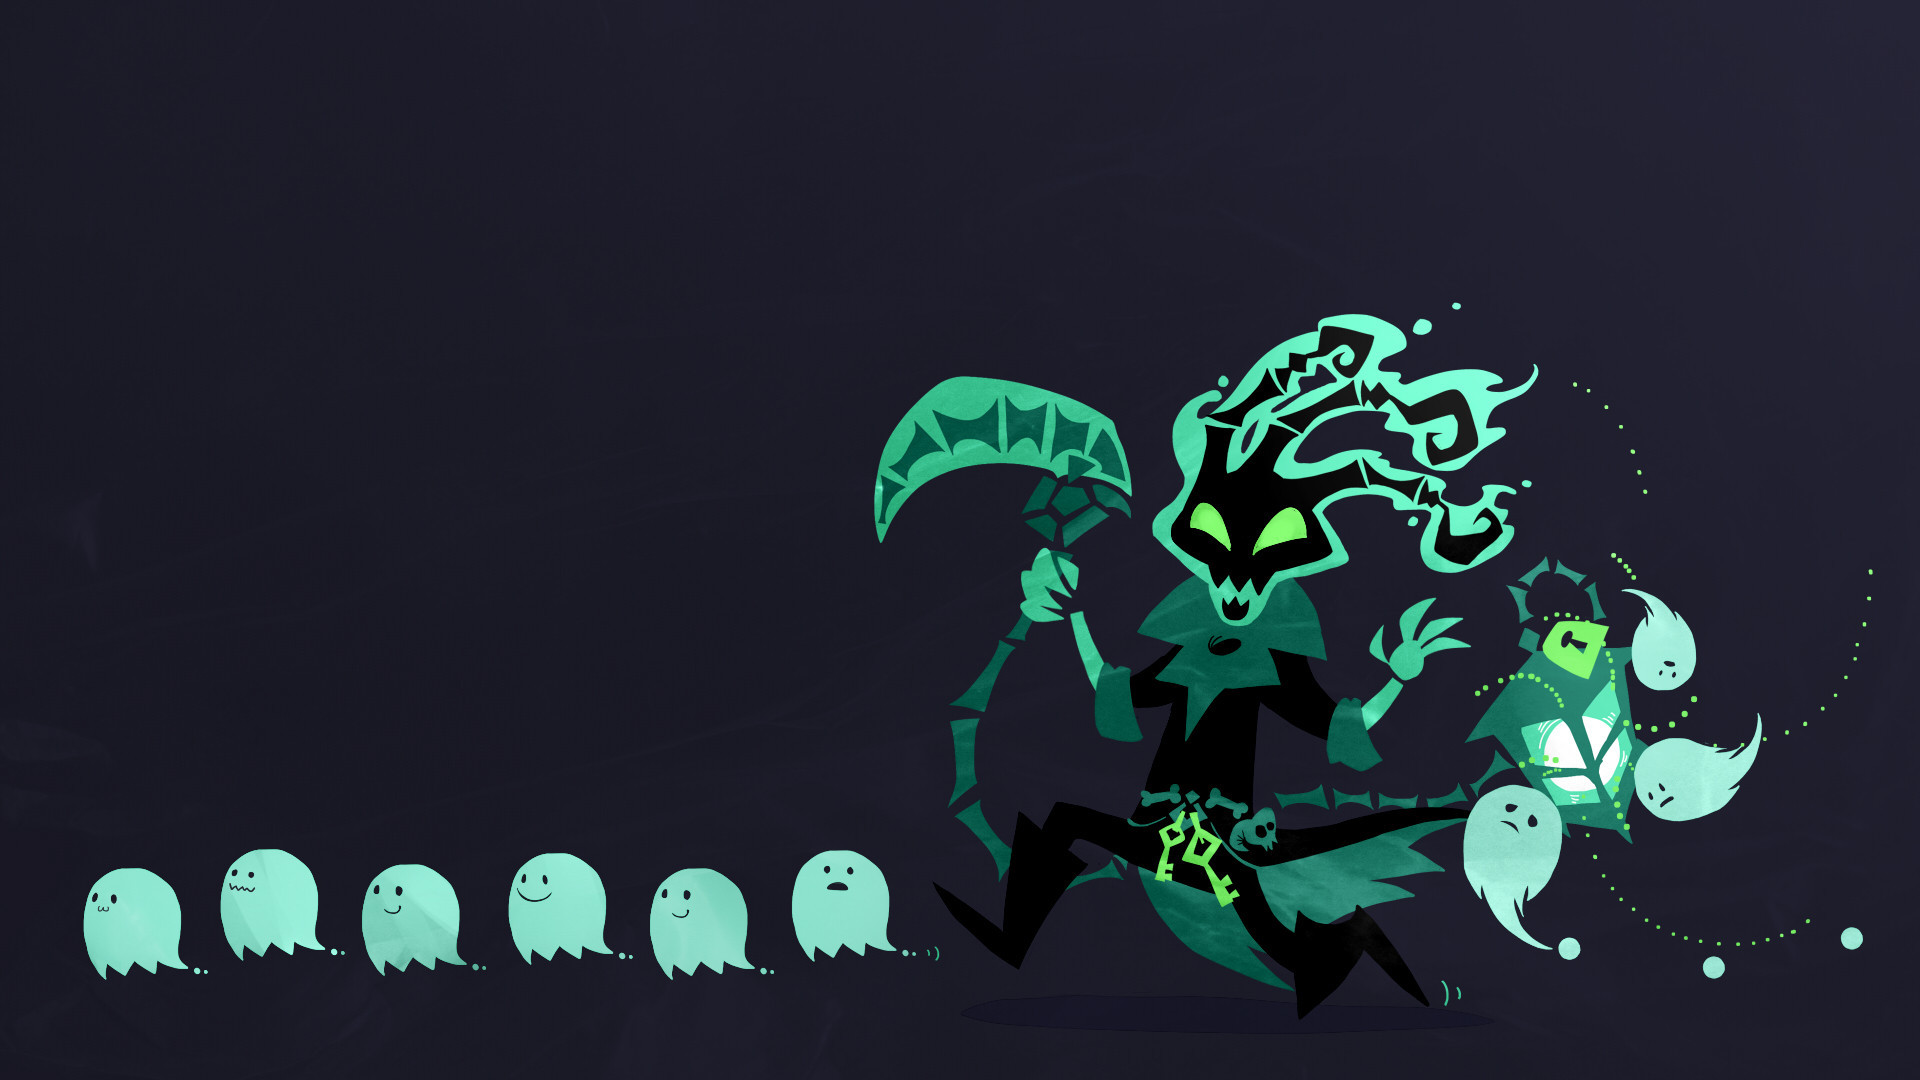 League Of Legends Minimalist Wallpaper 88 Images